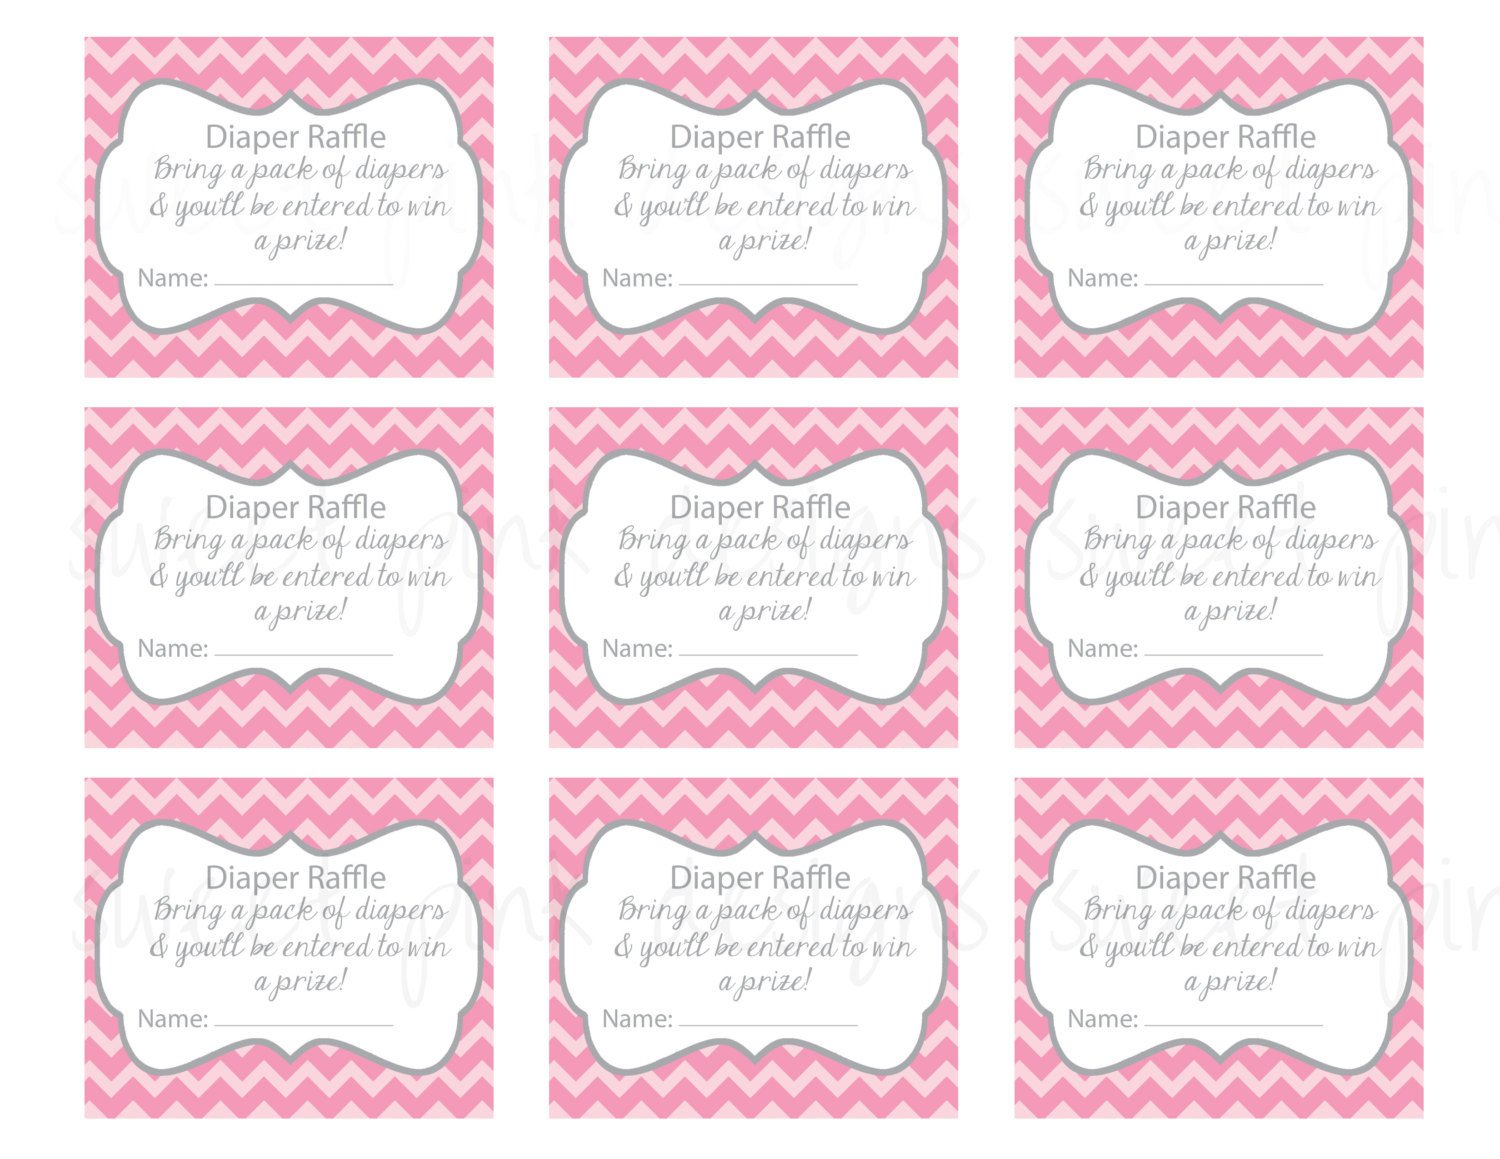 Diaper Raffle Ticket Template Diaper Raffle Ticket Grey and Pink Chevron